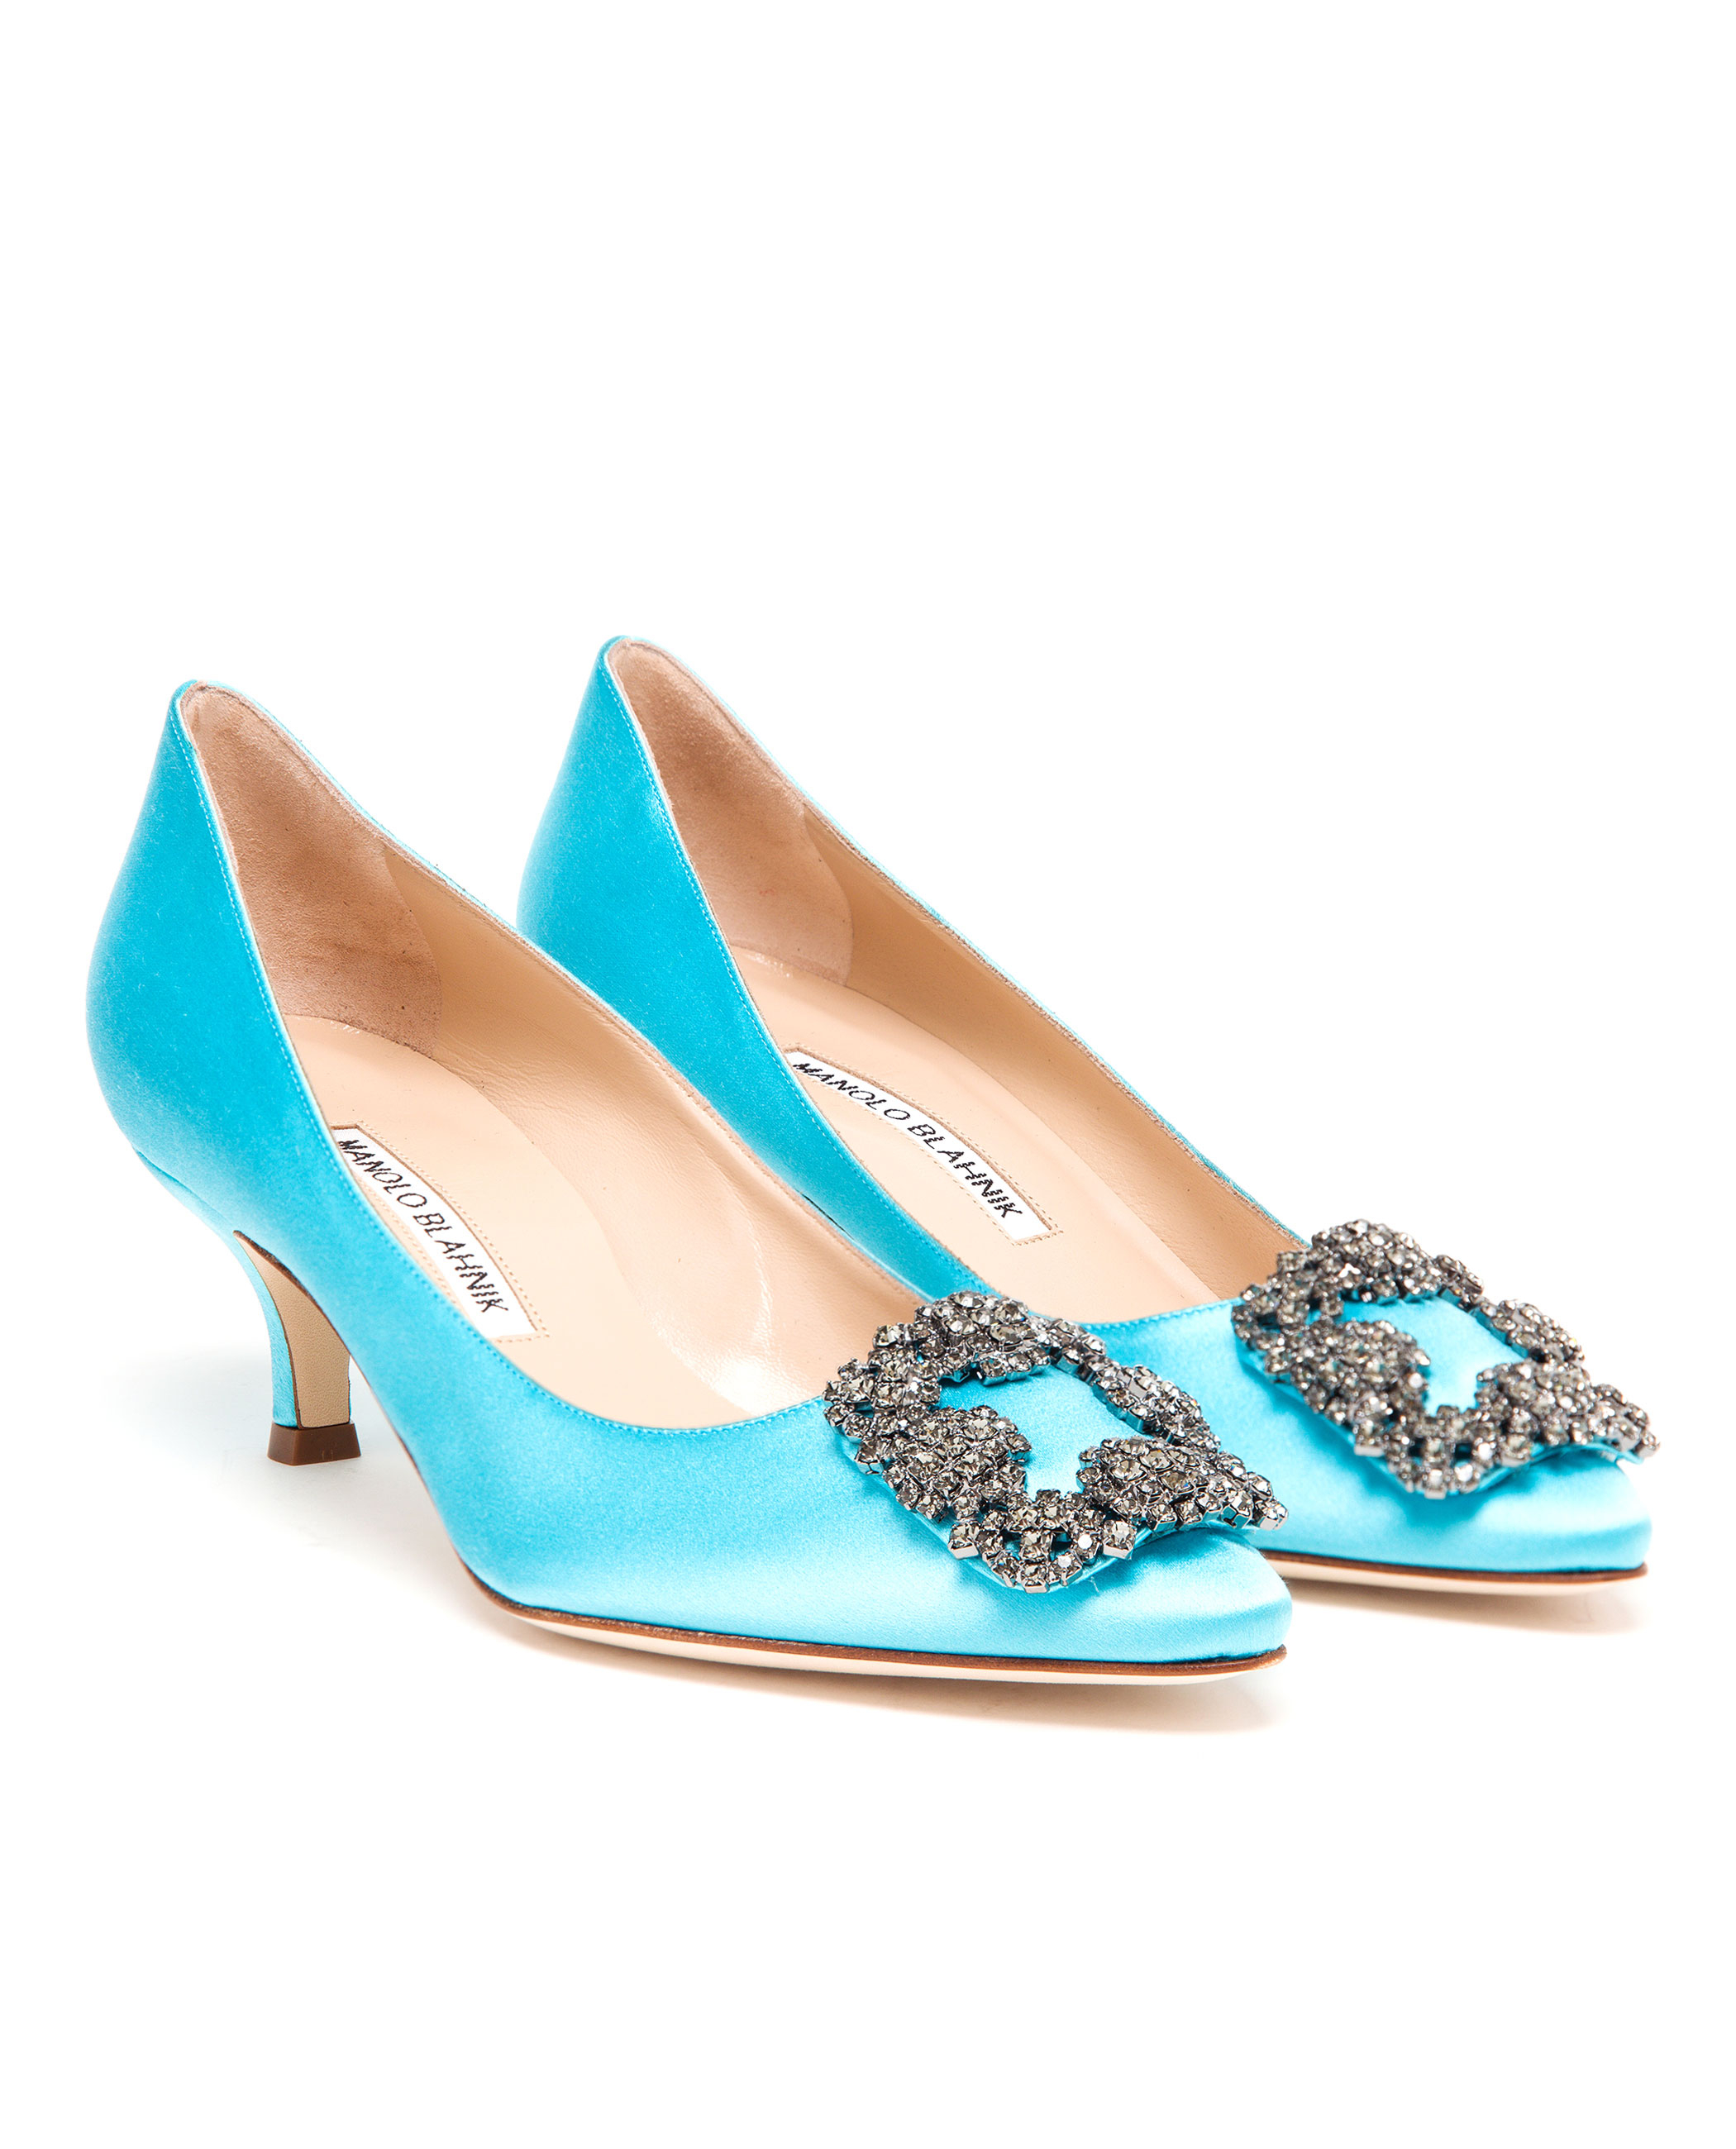 6635c8b8954 Gallery. Previously sold at  Browns · Women s Manolo Blahnik Hangisi ...